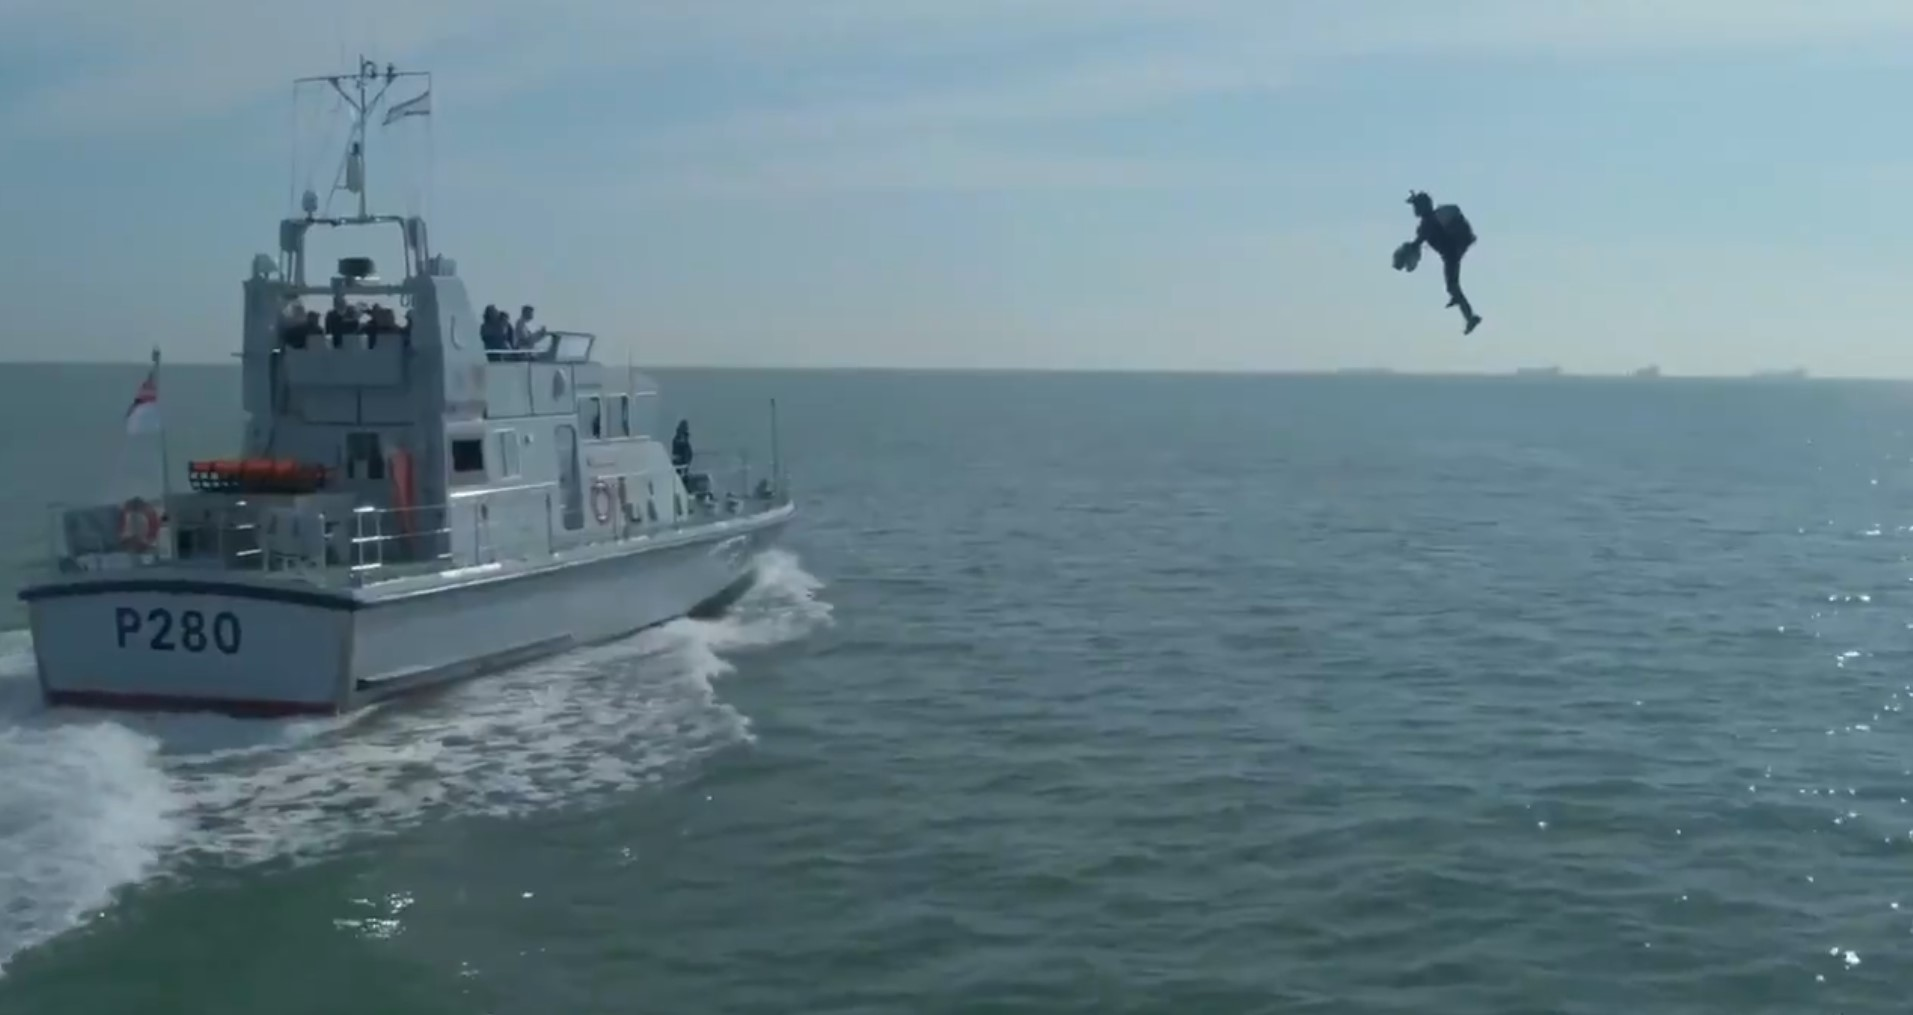 Royal Navy using flying Iron Man-style jet suits to practice storming enemy ships